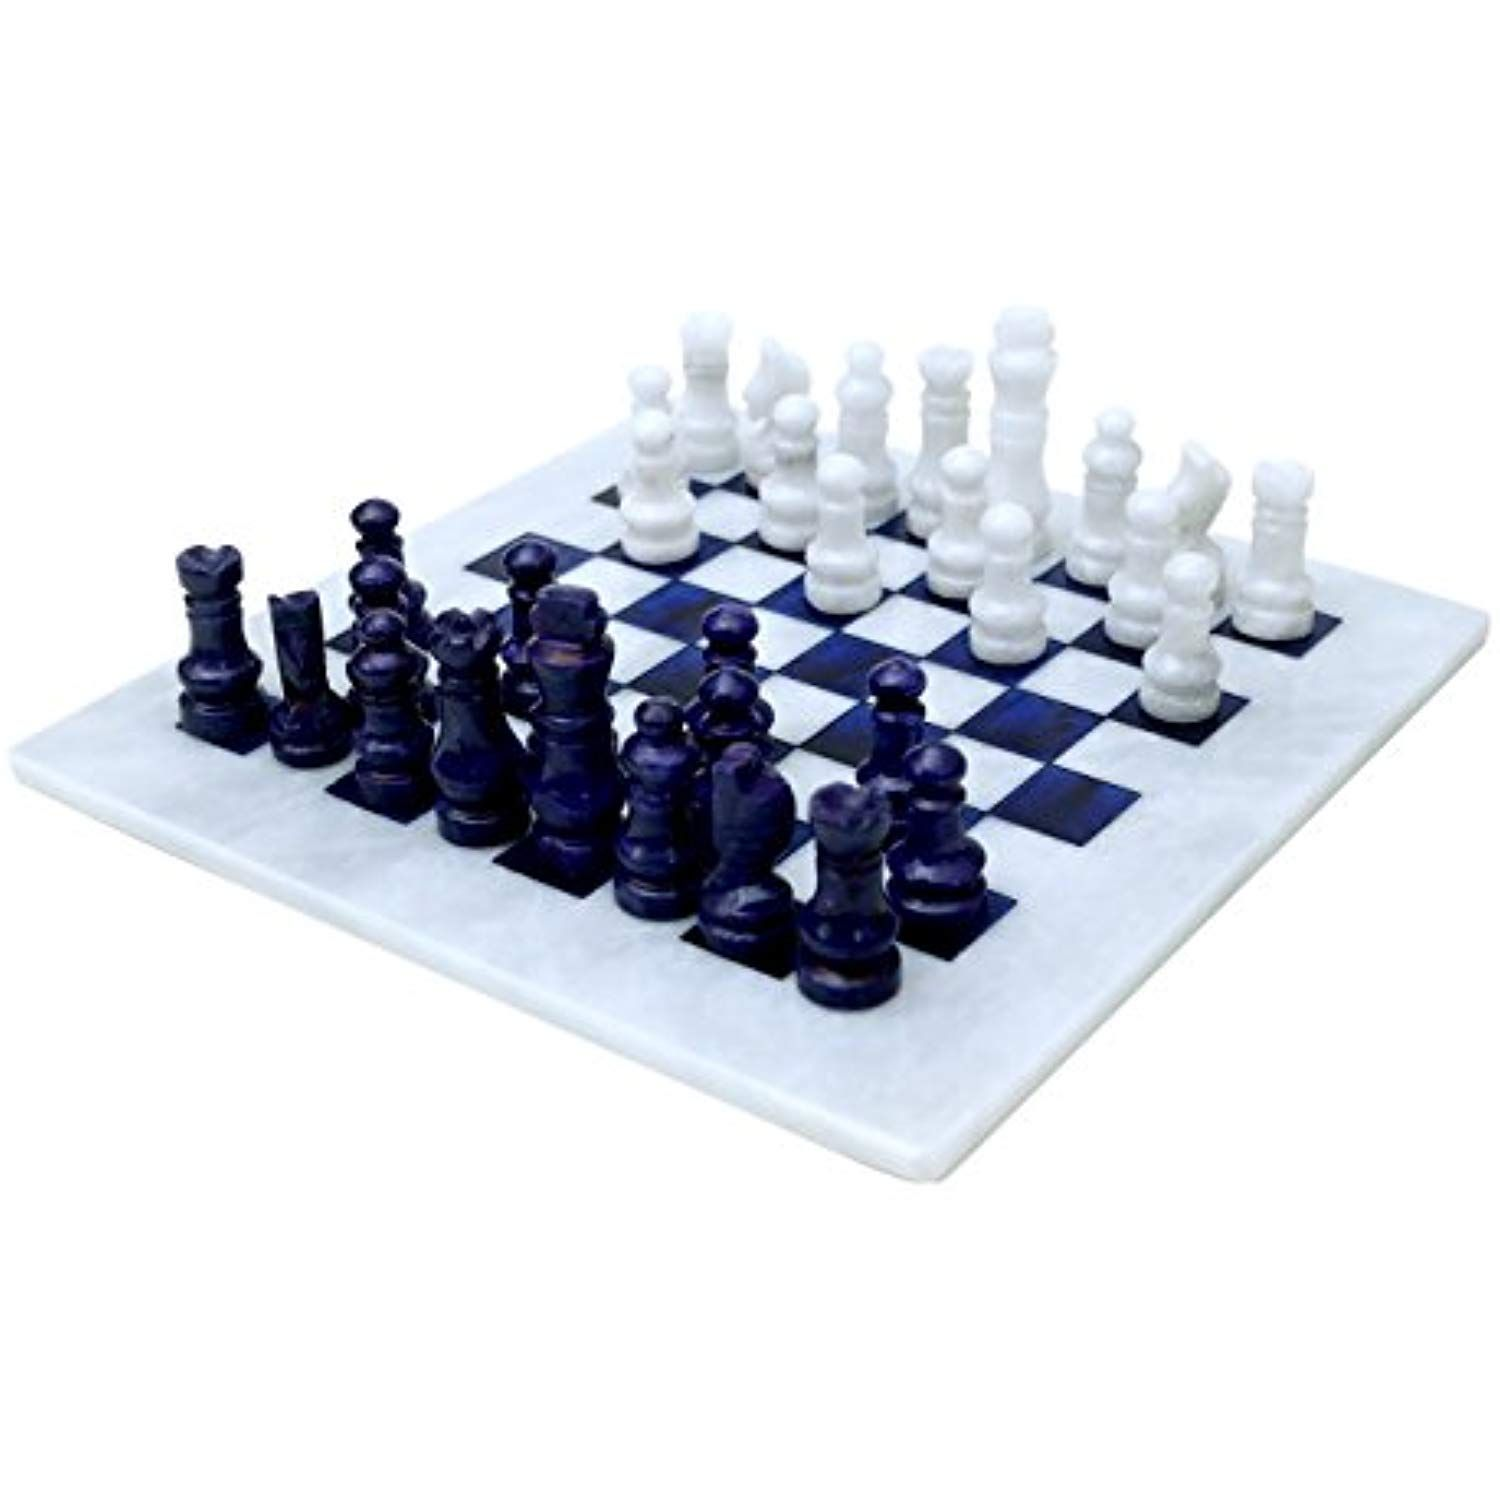 Green and Blue Color Board Game Playing Pieces Yellow Chess /& Sorry Replacement Halma Pawn Markers, Colored School Classroom Supplies, Arts /& Crafts Projects, Teaching /& Education Toy Resource Components, Extra Instructiona Plastic Pawns: Set of 36 Red